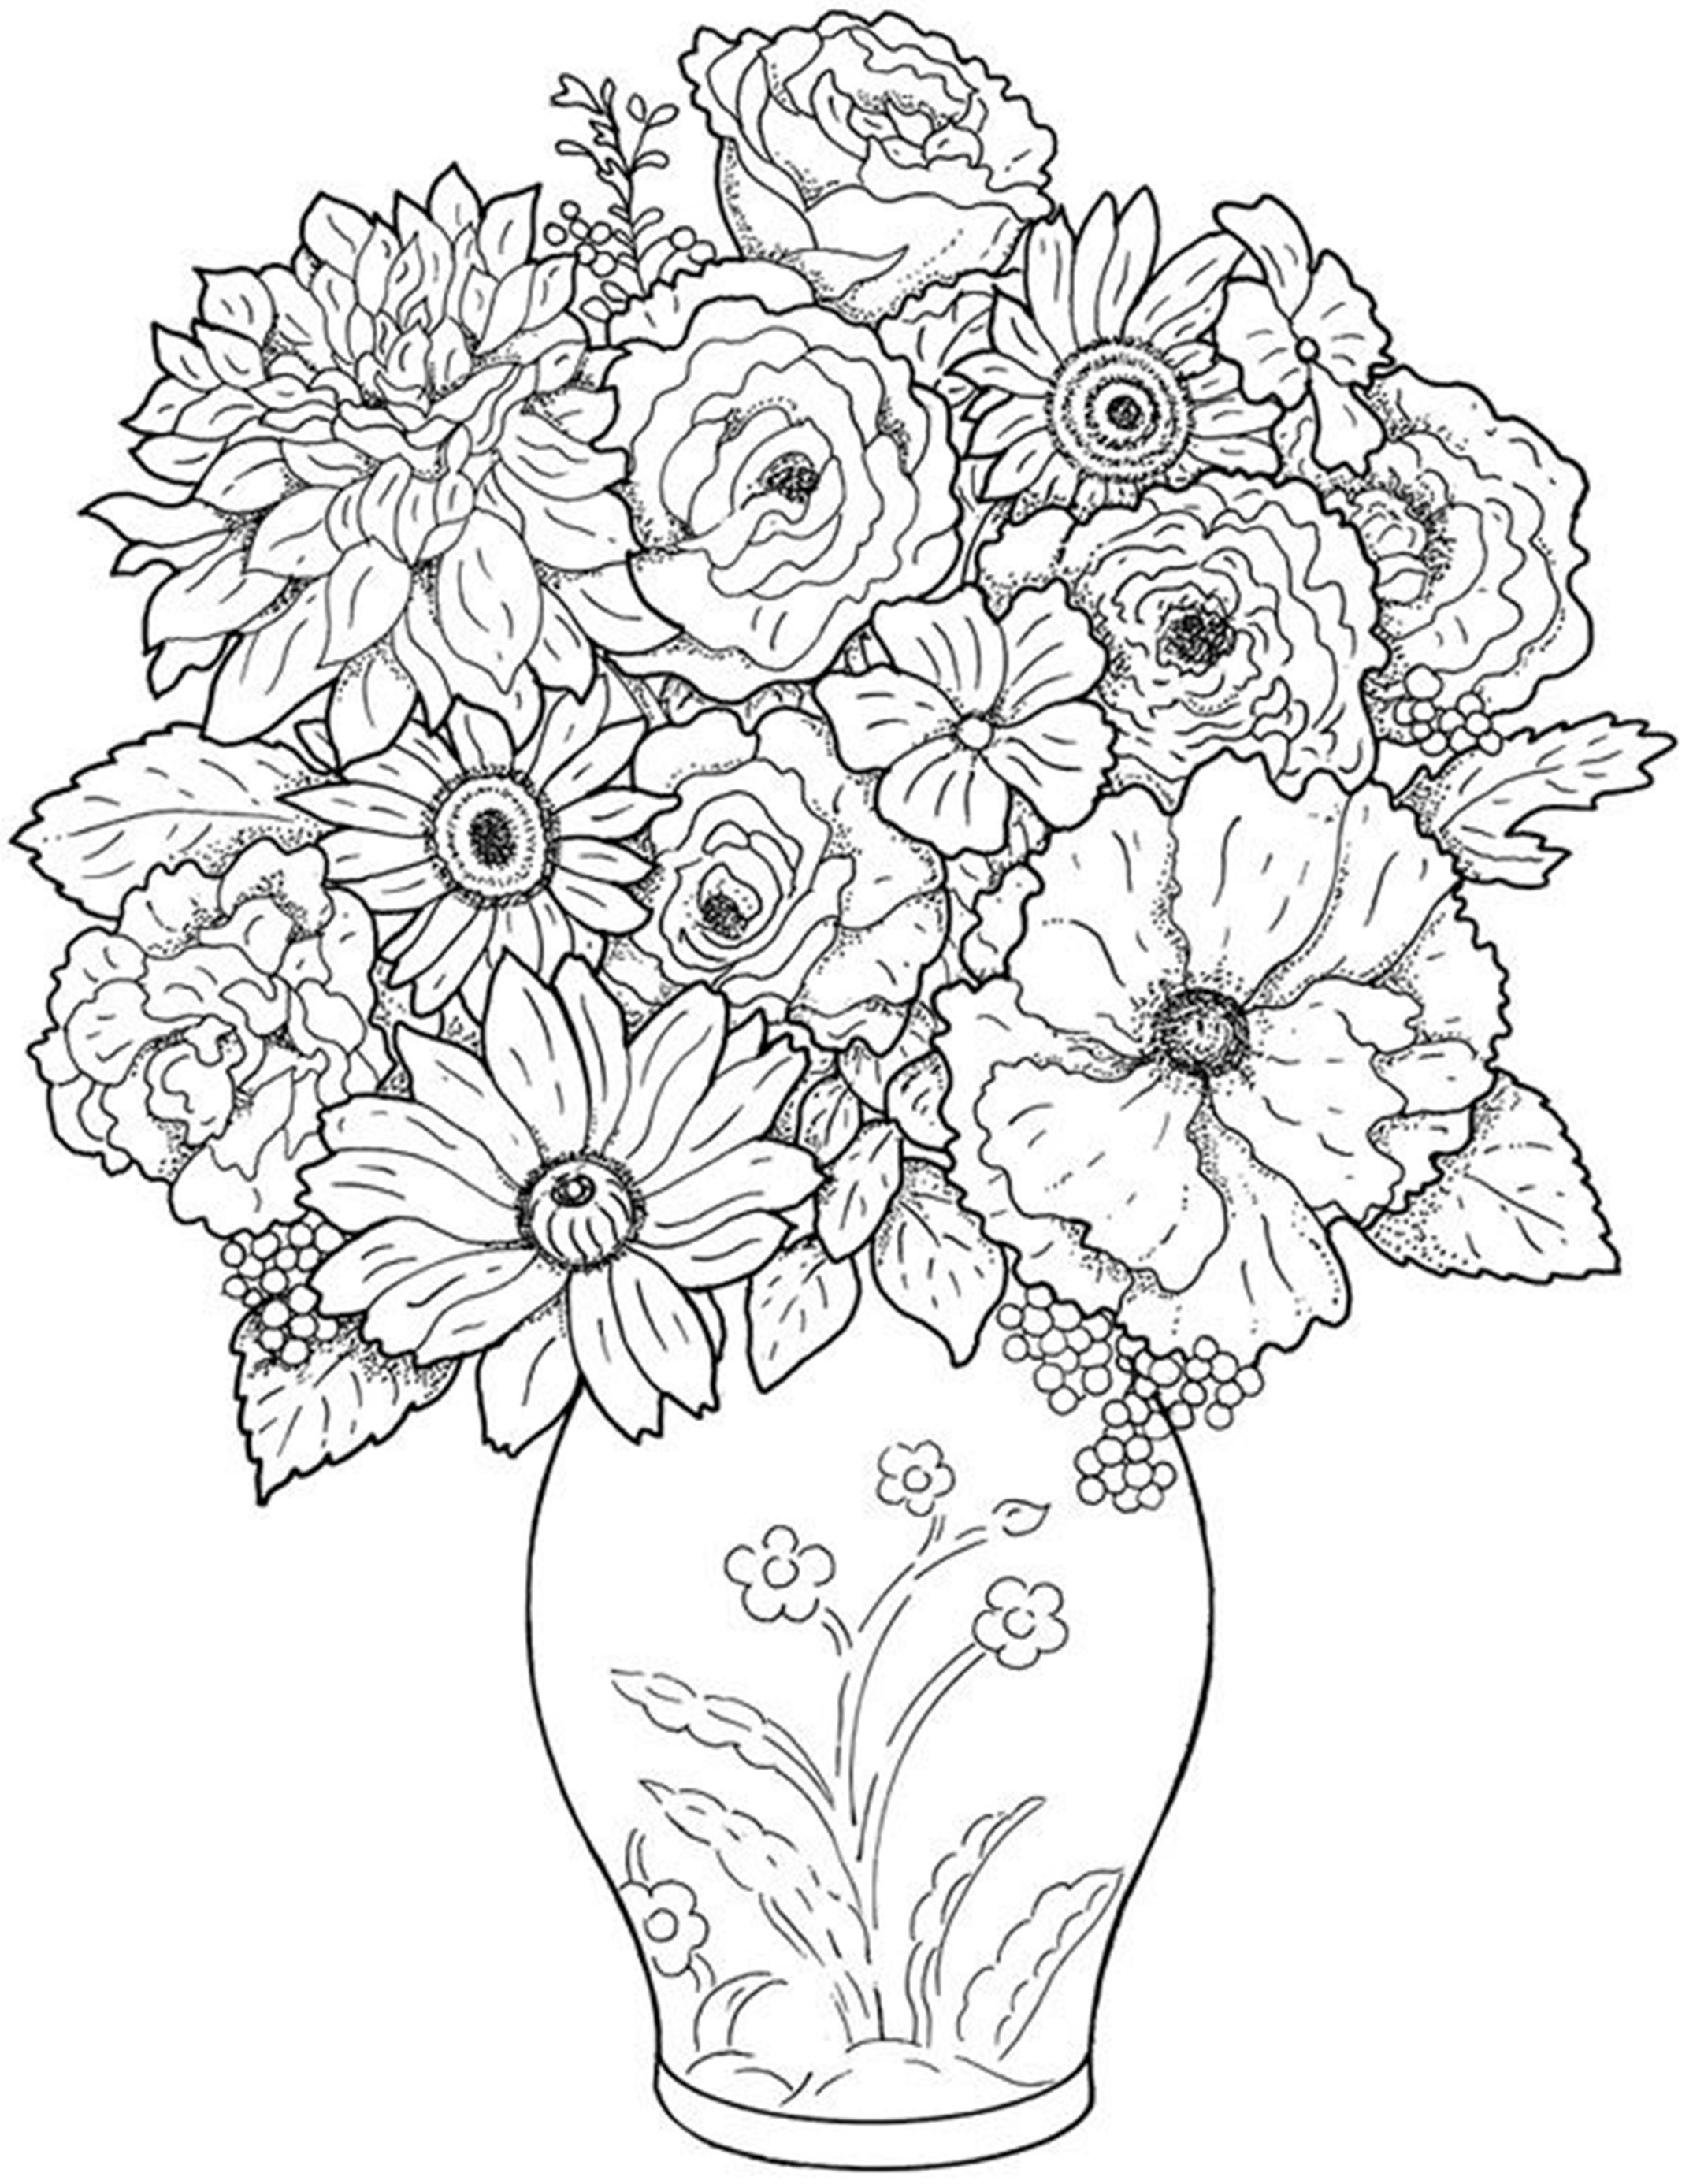 Free Printable Flowers Coloring Pages #10520 - Free Printable Flower Coloring Pages